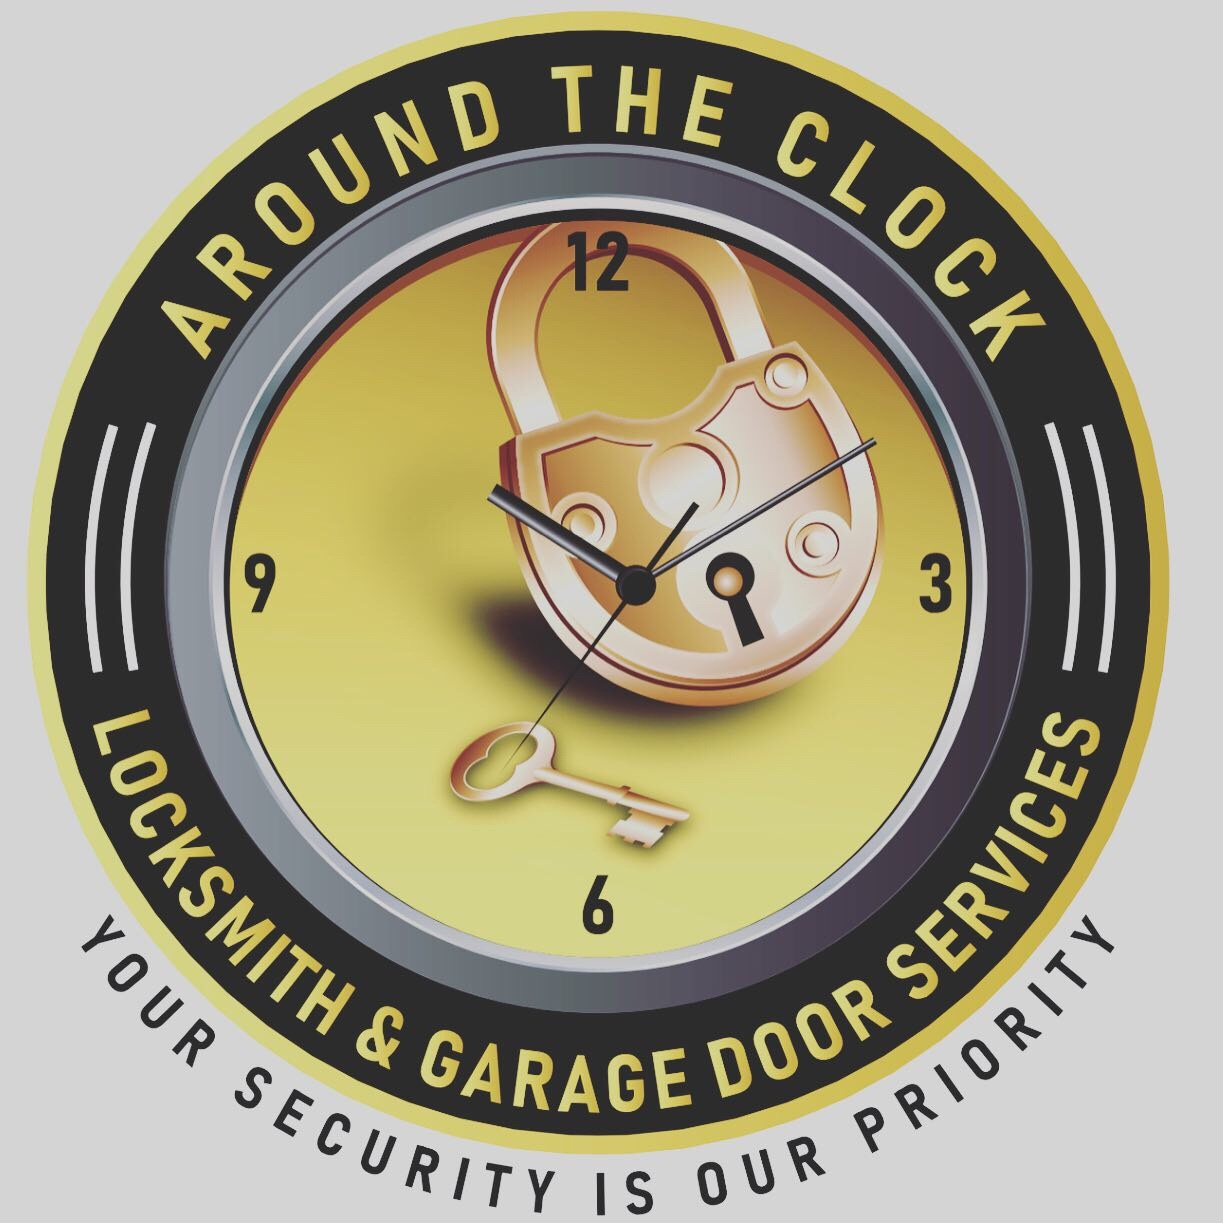 Around the Clock Locksmith & Garage Door Services